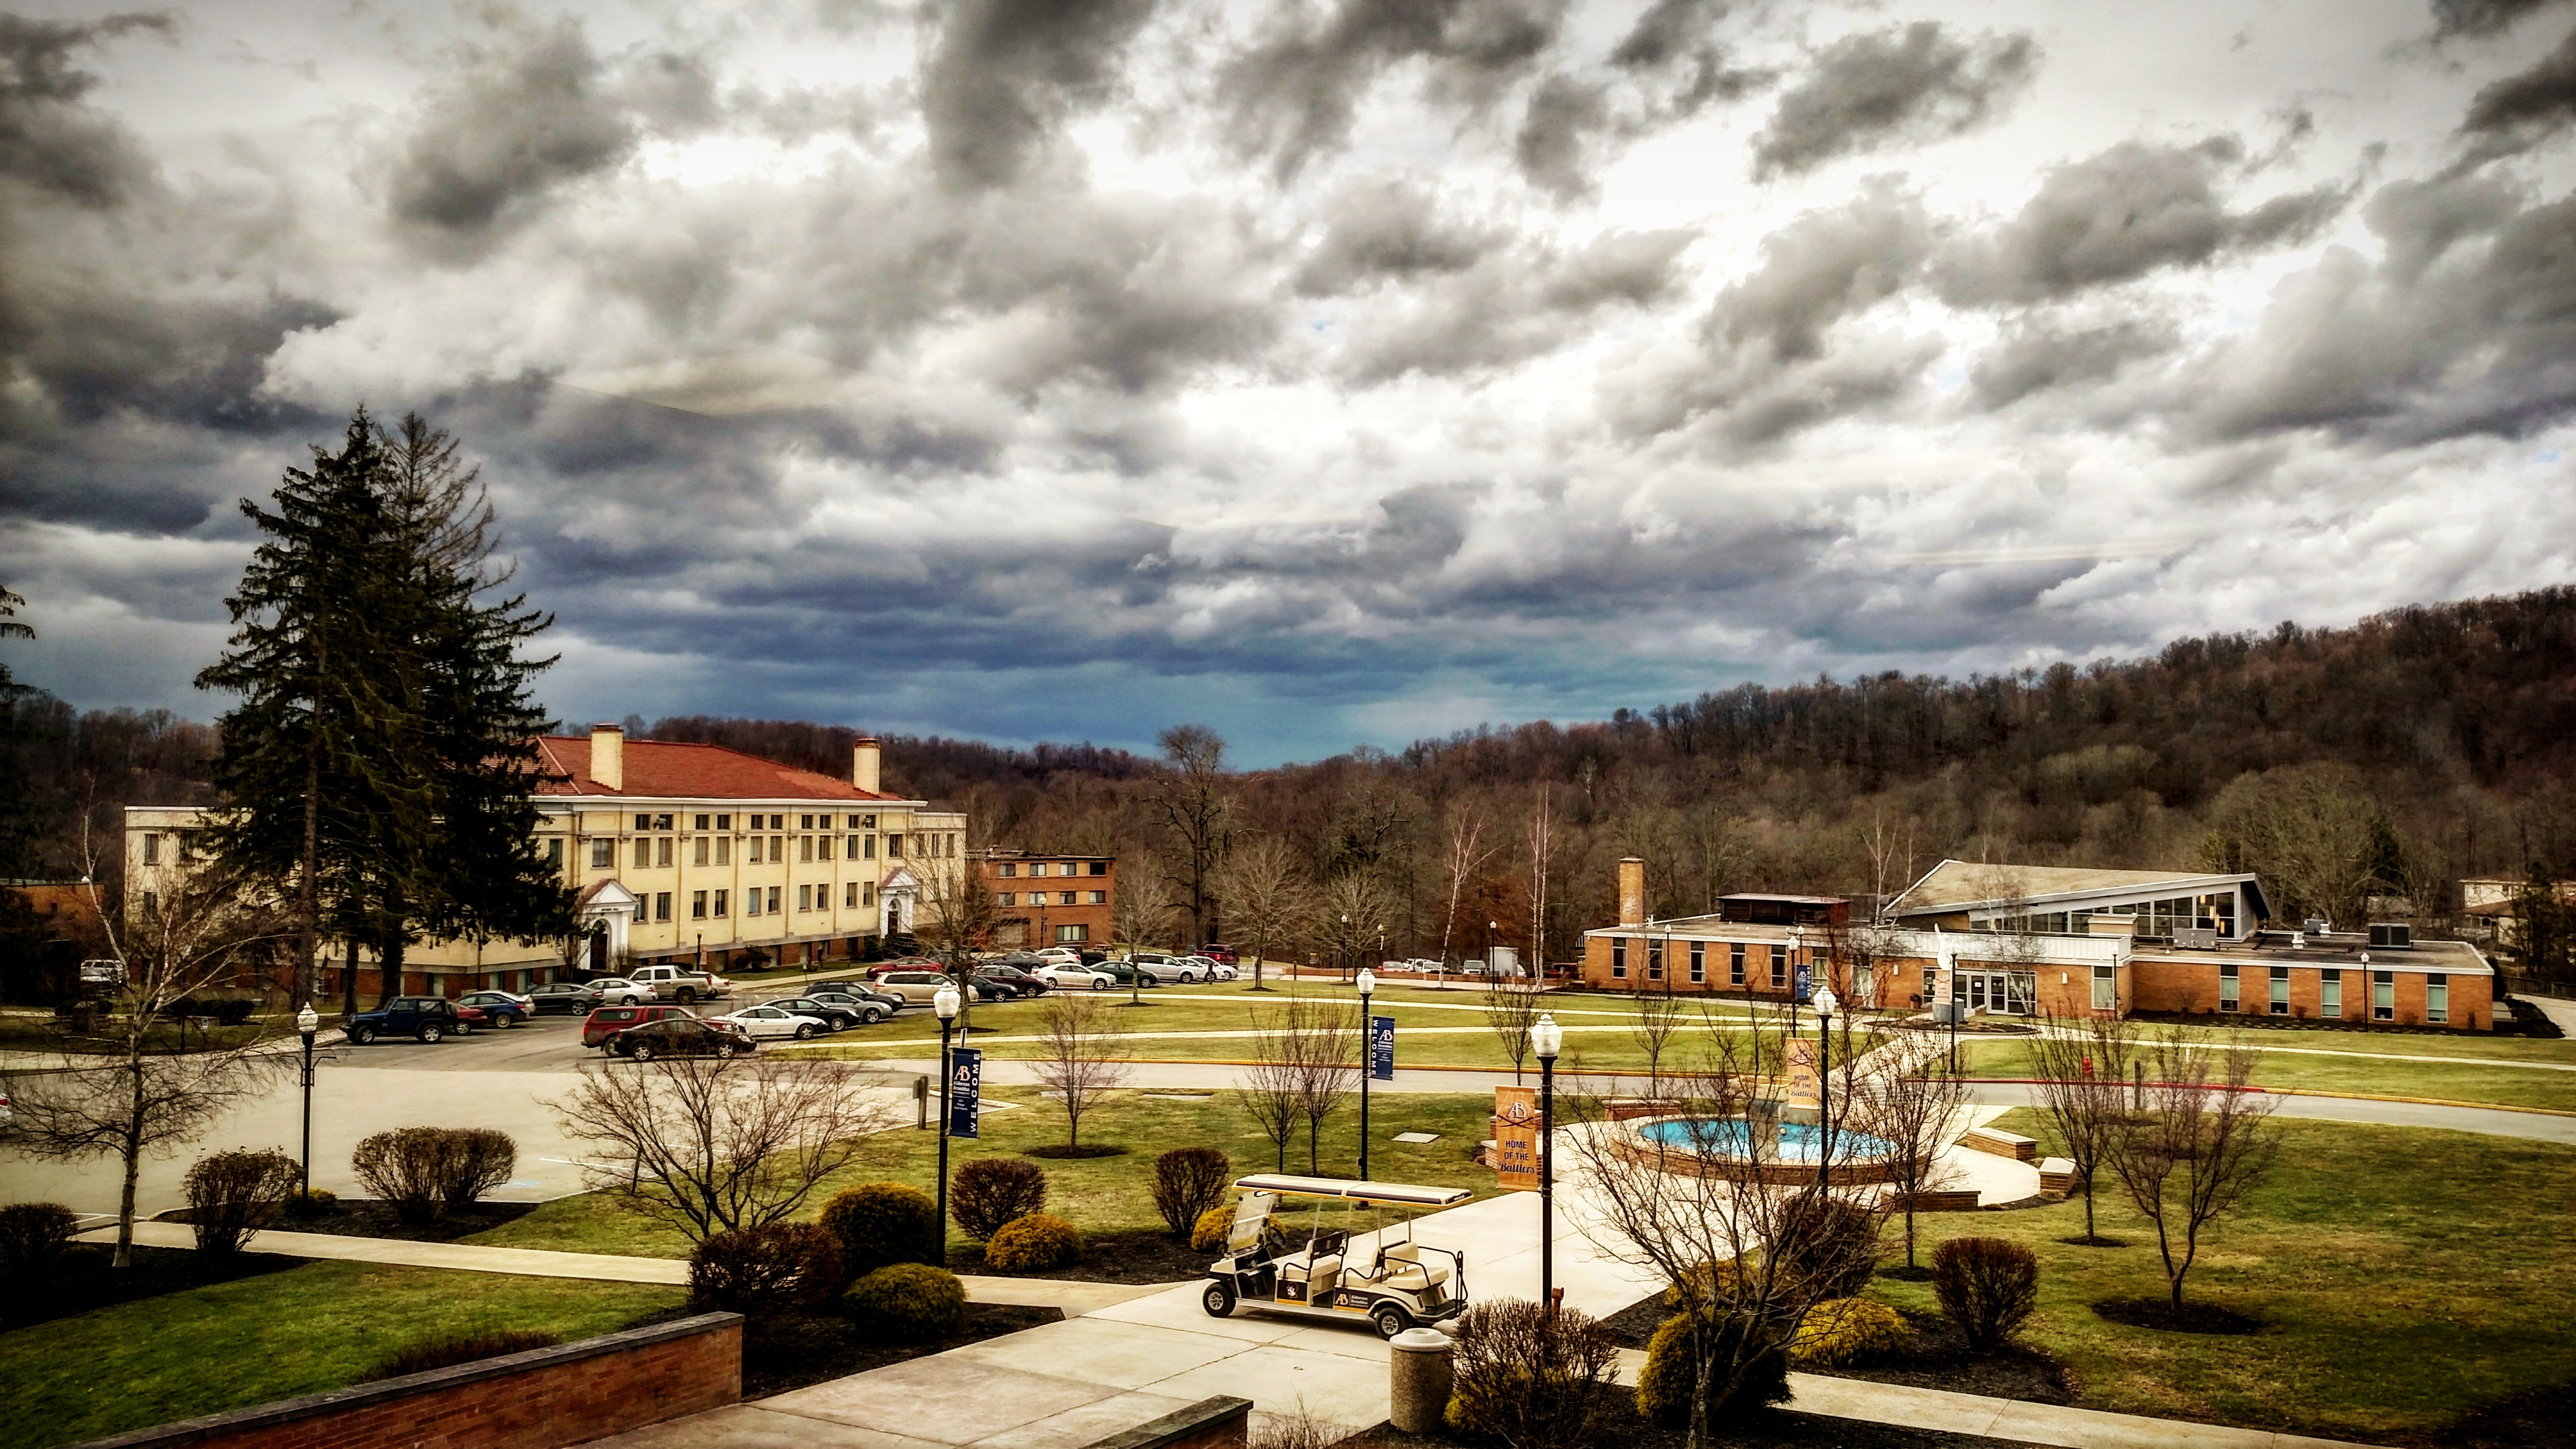 Campus from Burbick - storm approaching